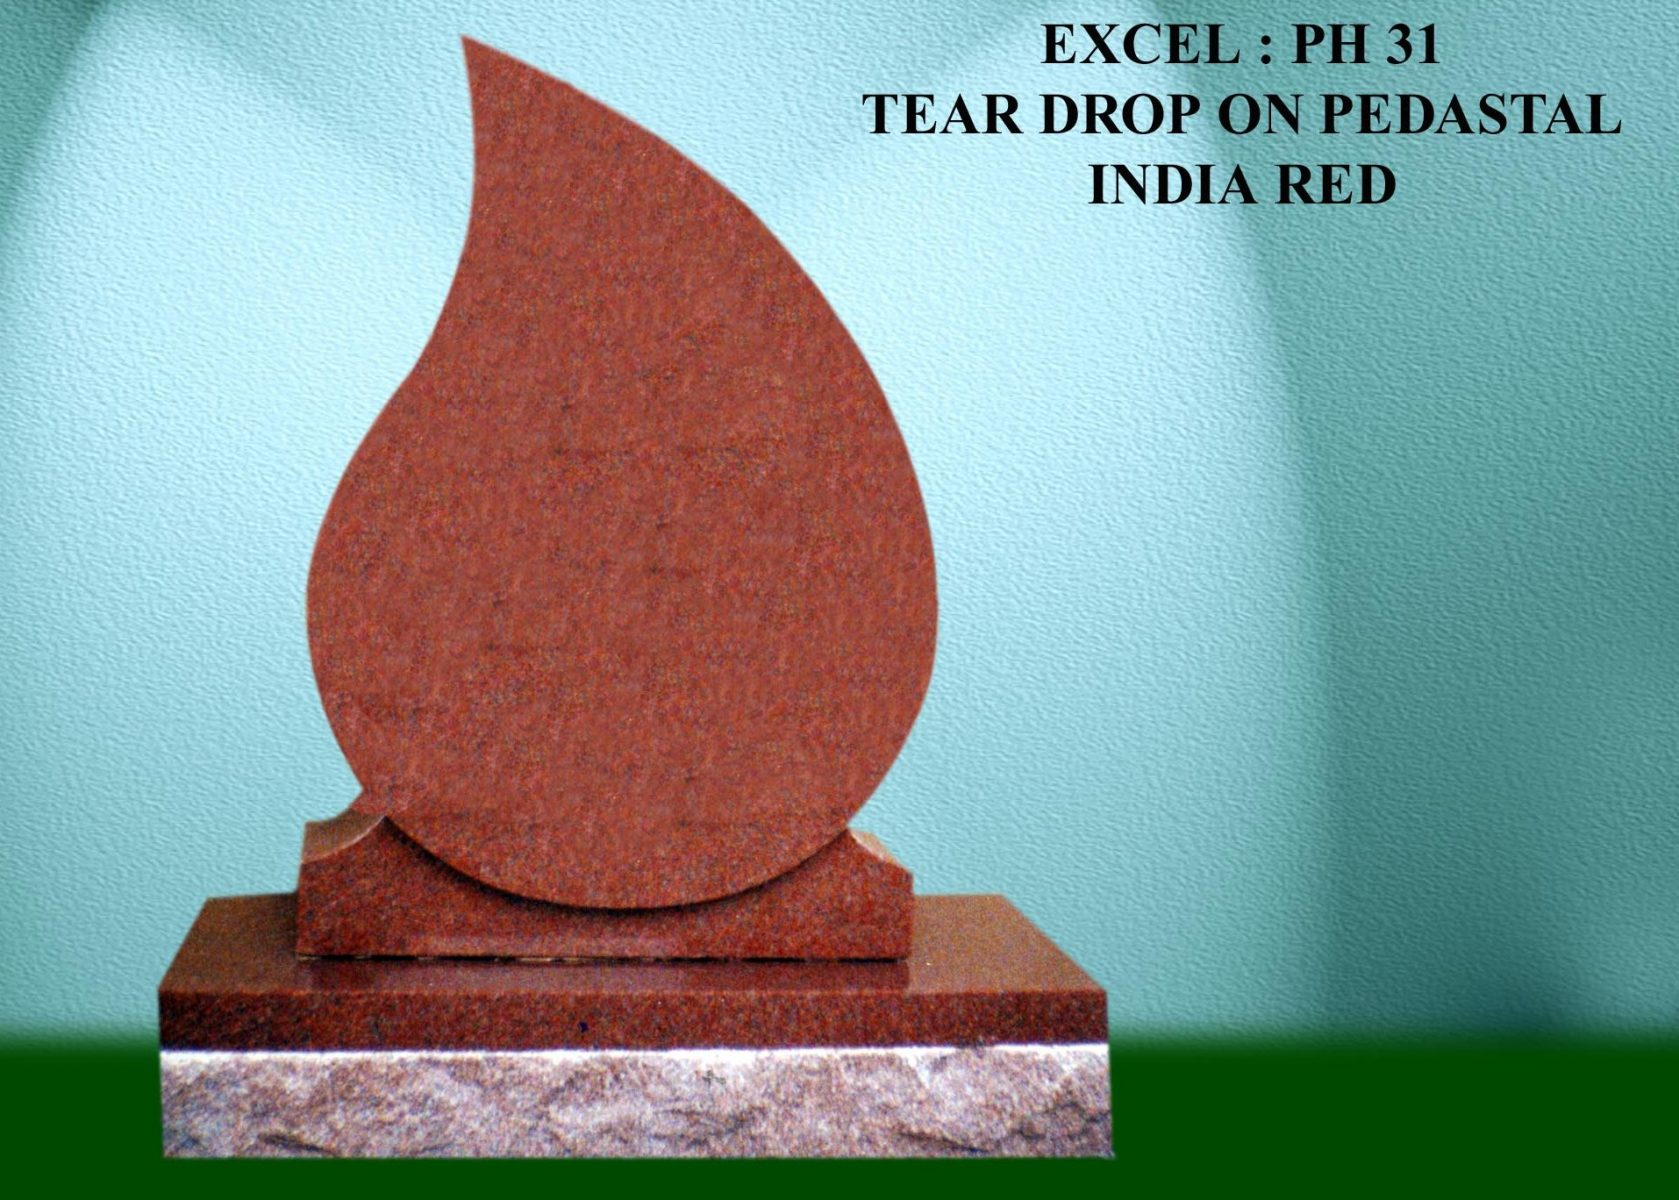 EG-31 / India Red / Left-Pointing Raised Tear Drop